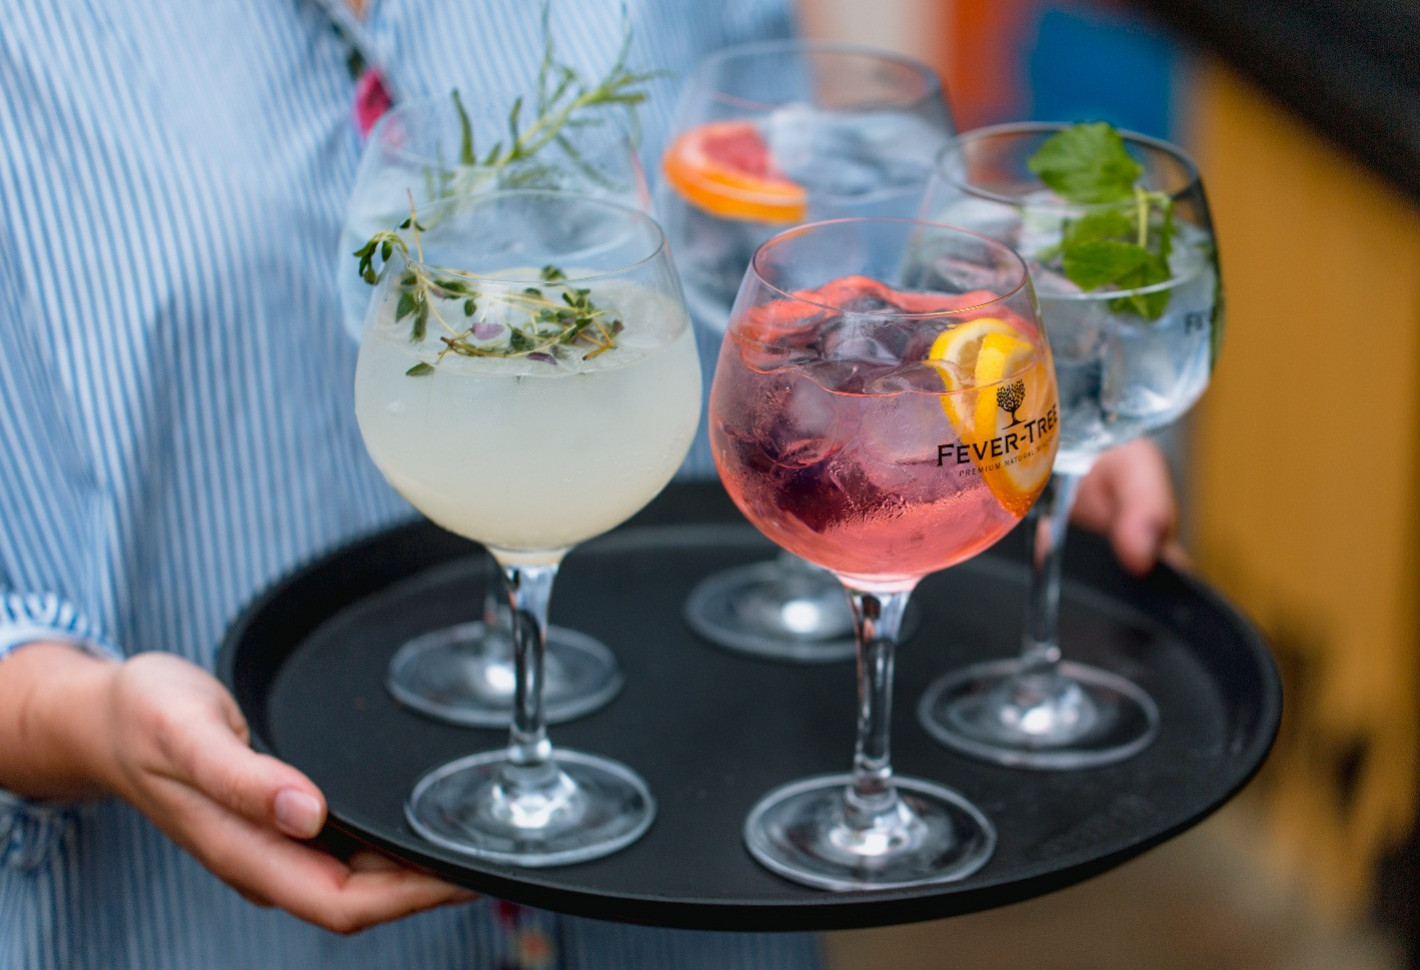 WANT TO STOCK FEVER-TREE?